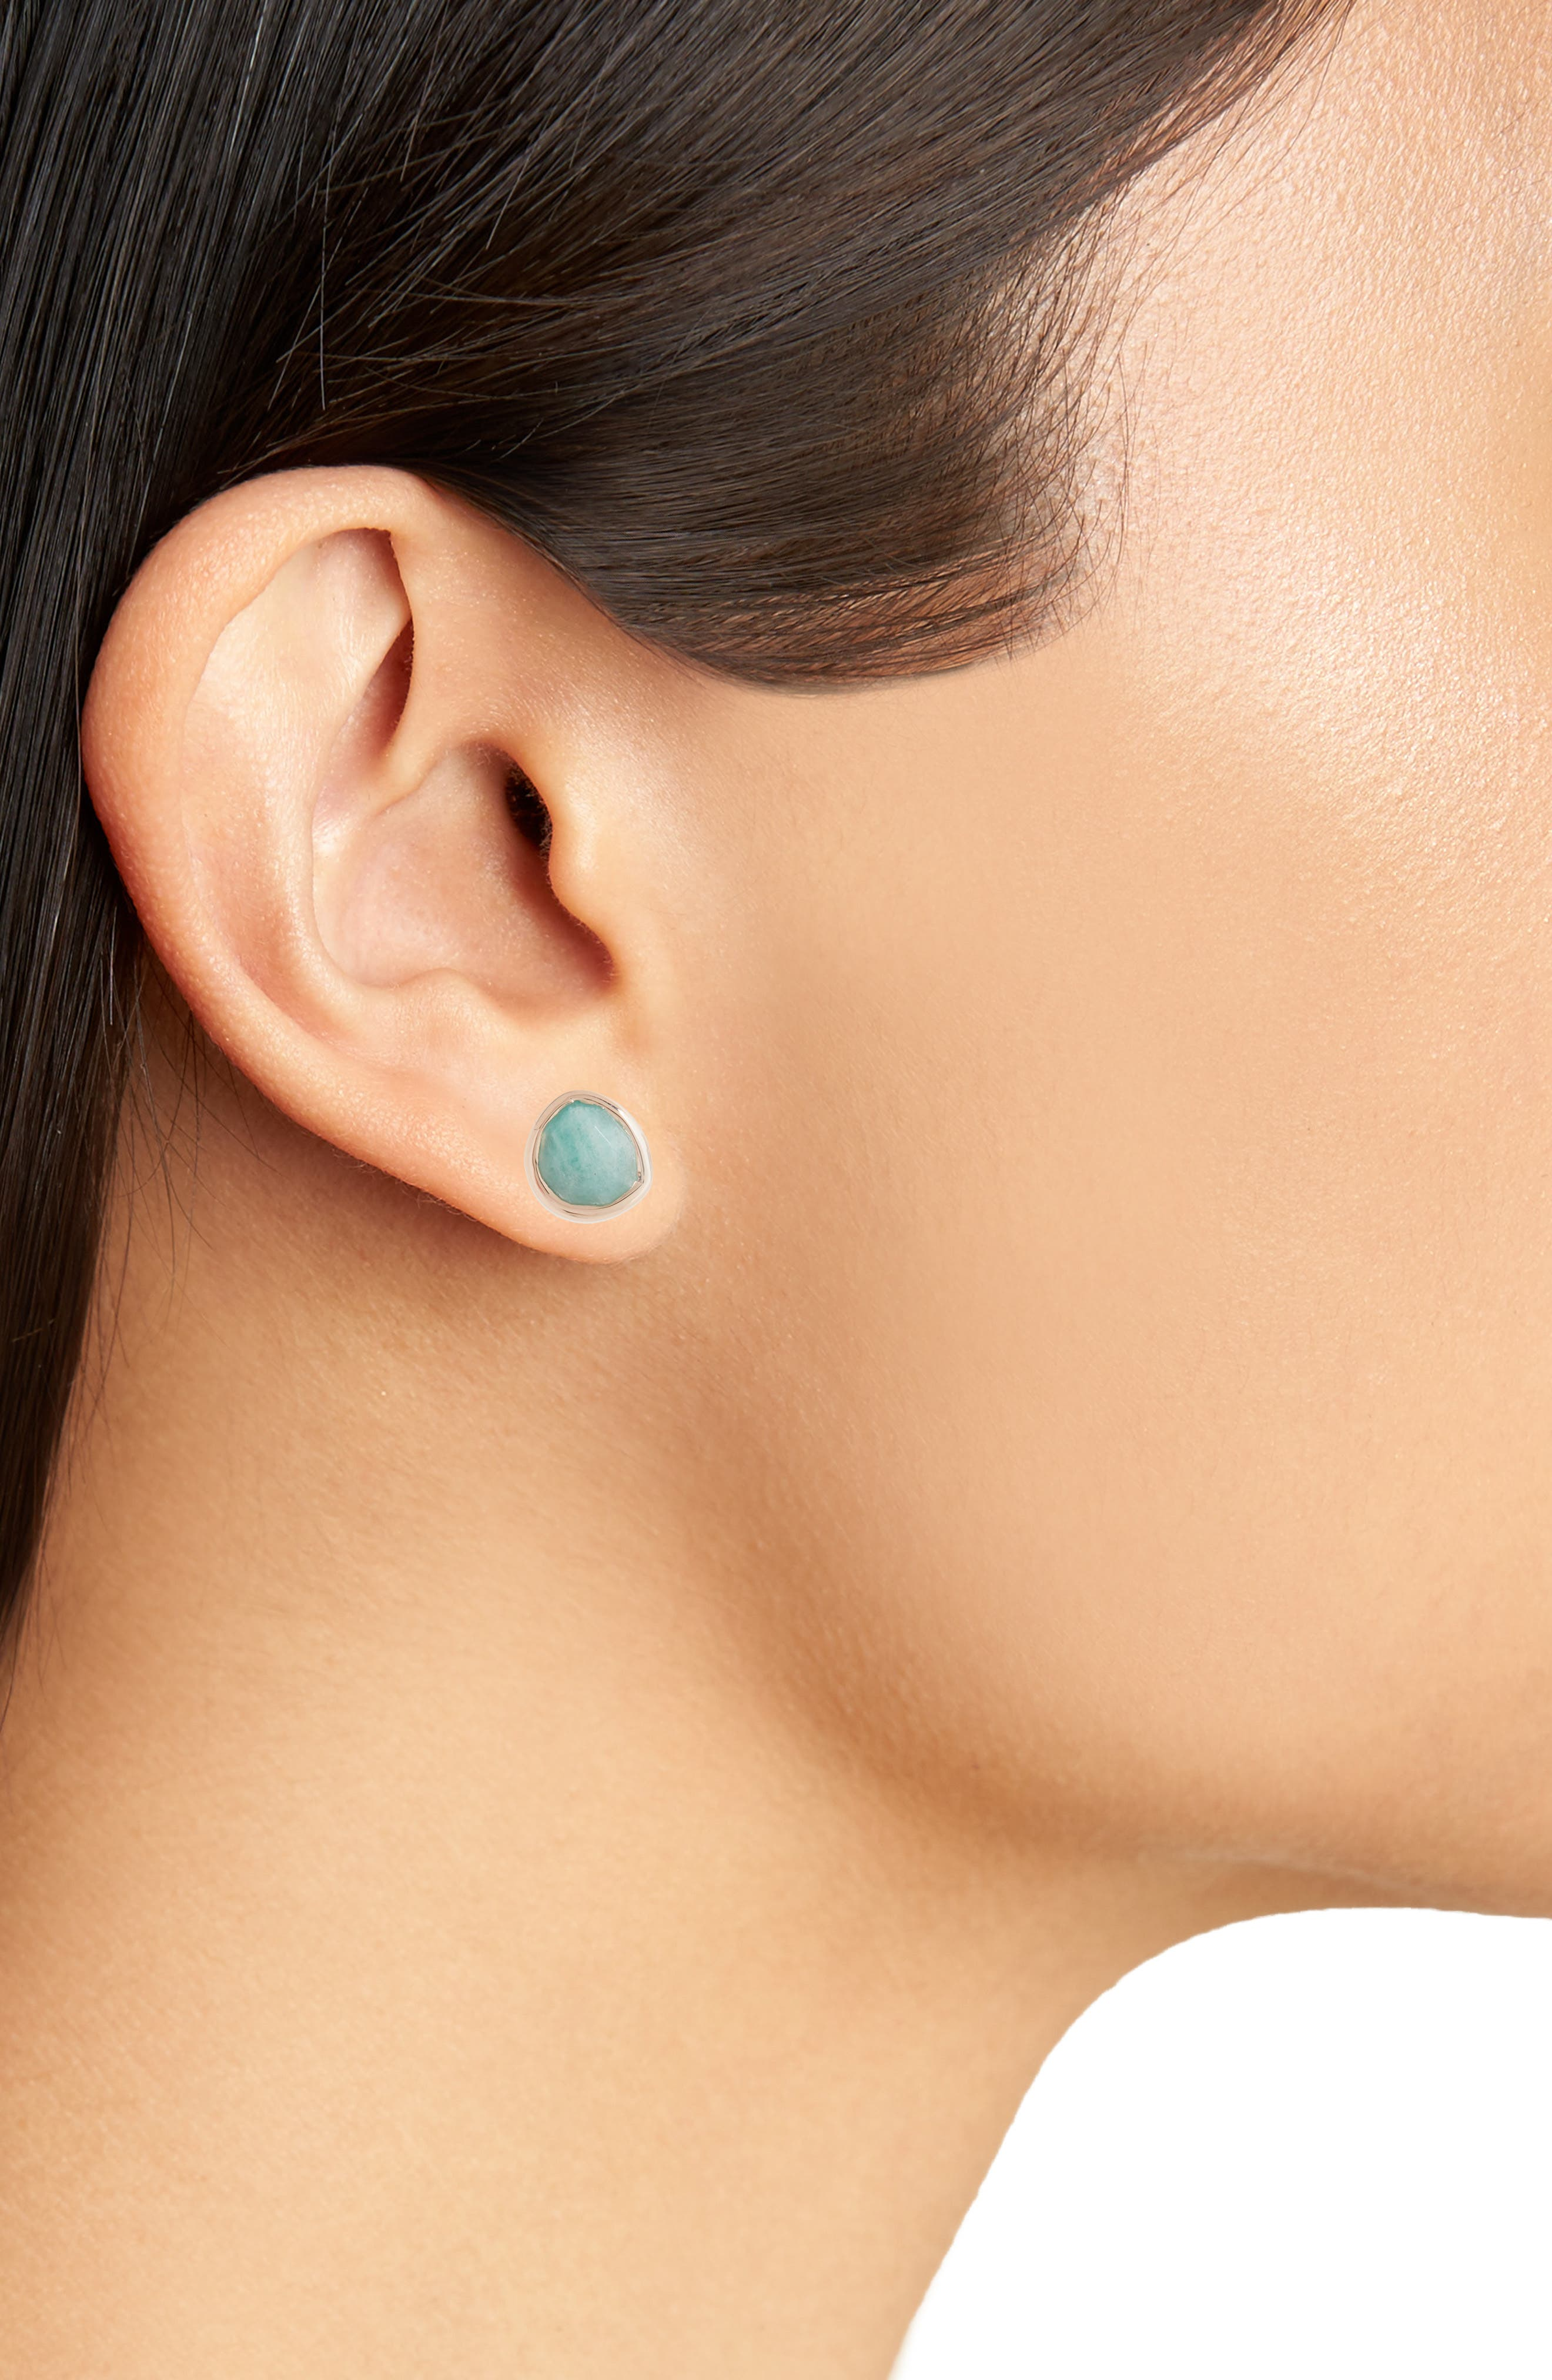 MONICA VINADER, 'Siren' Semiprecious Stone Stud Earrings, Alternate thumbnail 2, color, AMAZONITE/ ROSE GOLD